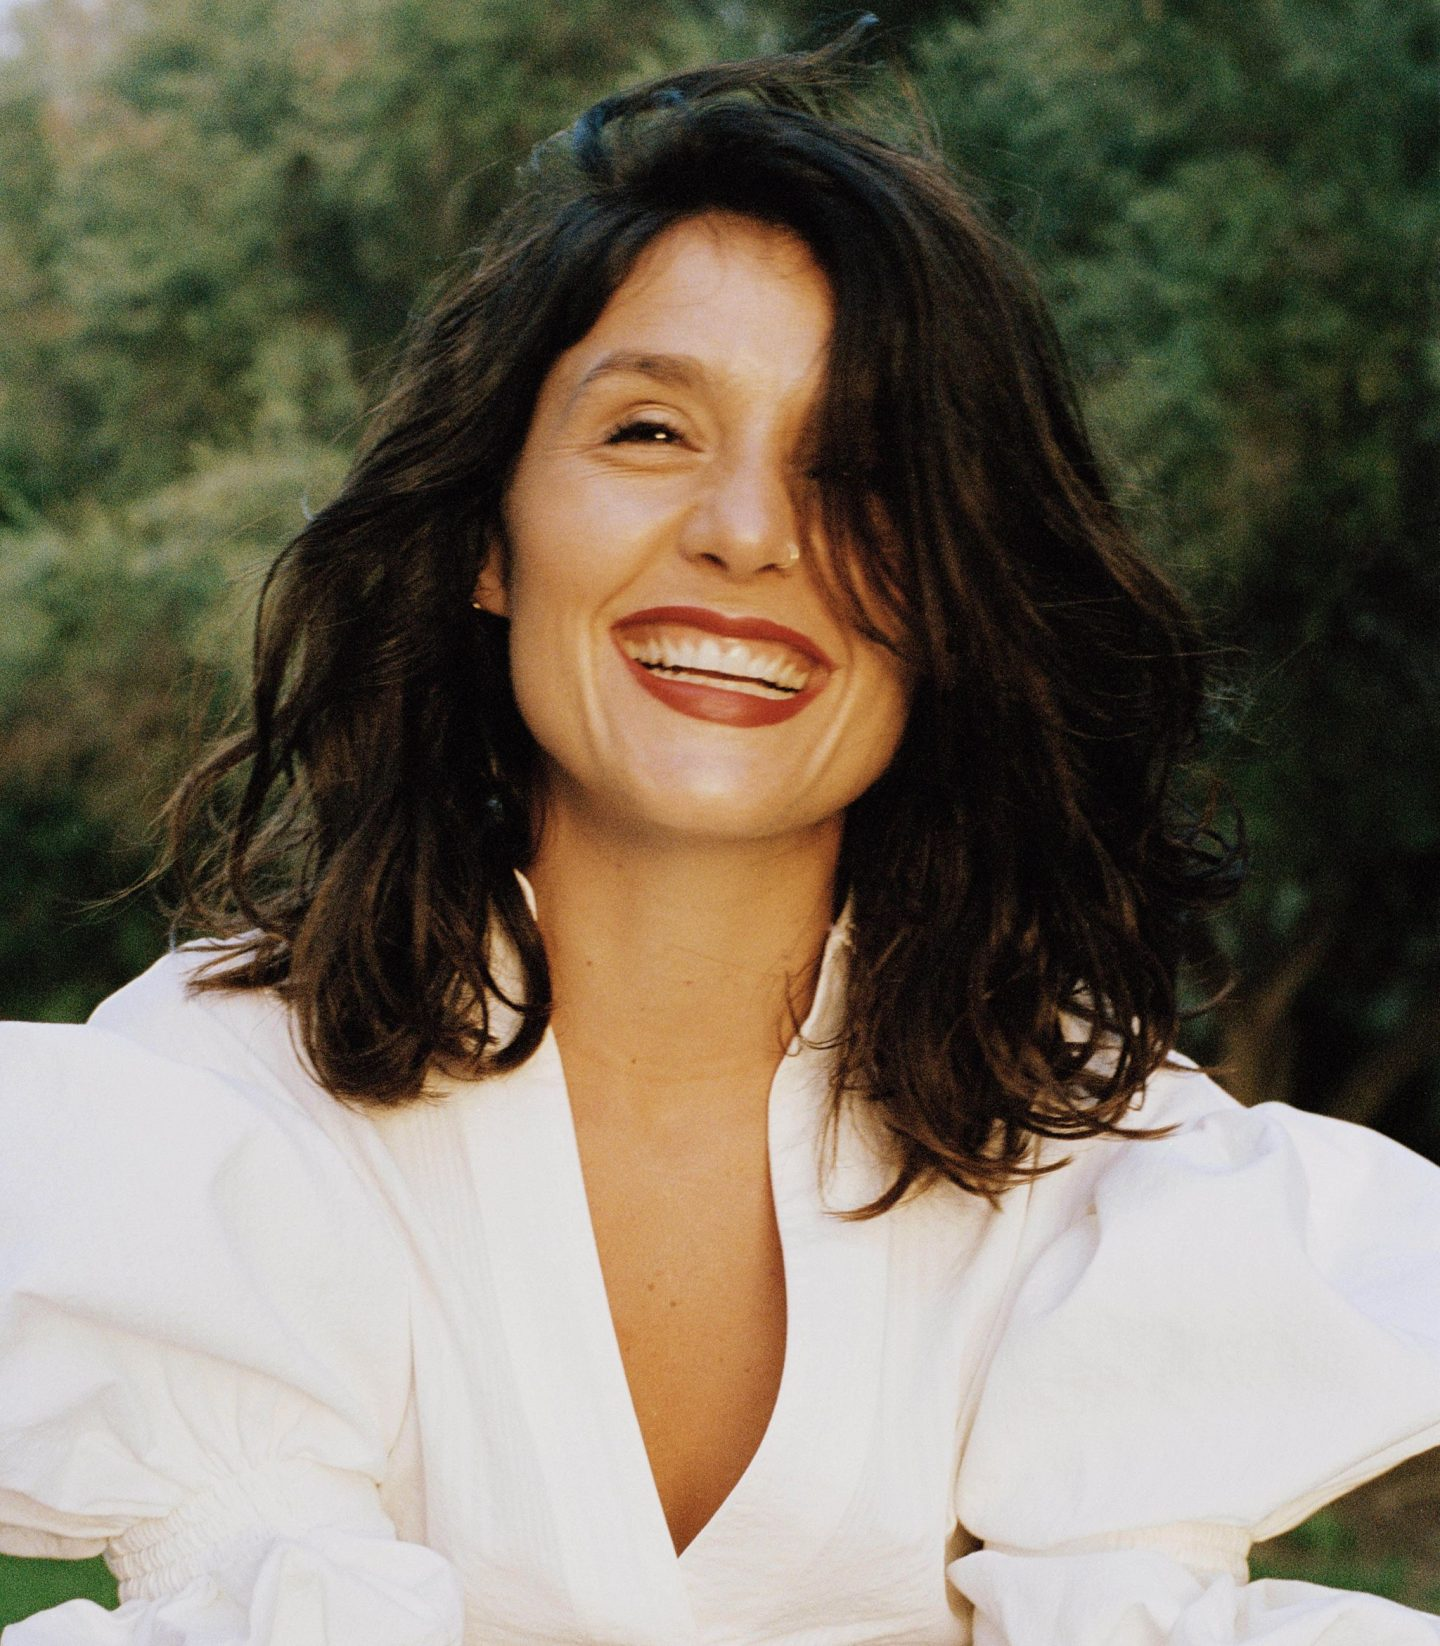 Jessie Ware, Singer songwriter, Anyware, Anyware Kids, Anyware Clothing, Table Manners podcast, DadblogukQA, Dad blog